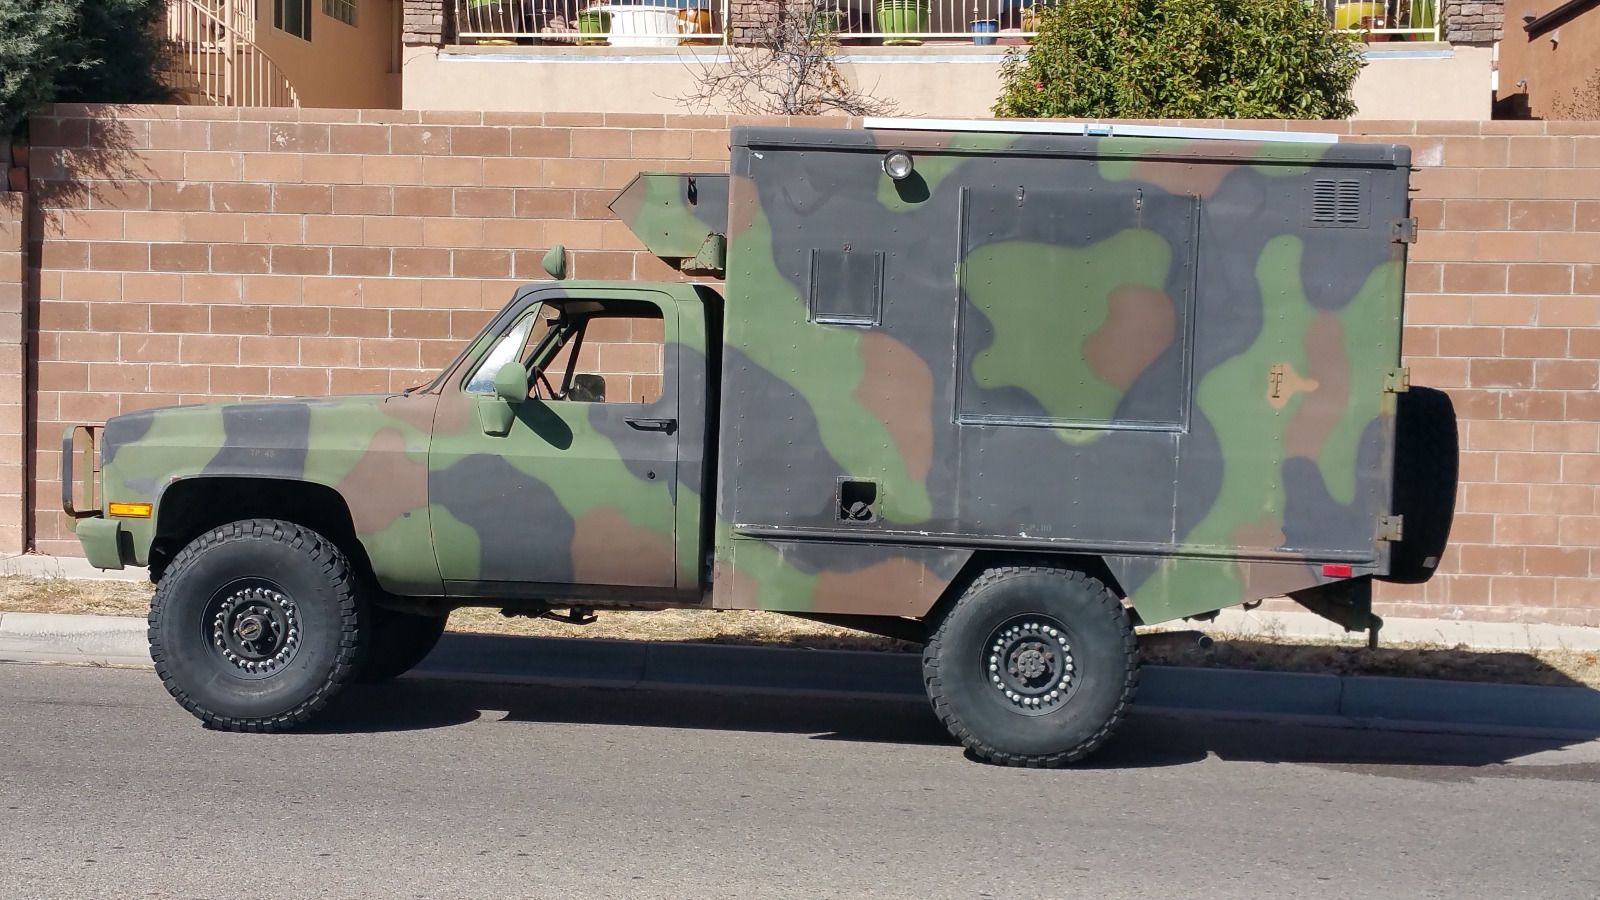 Chevy Military Trucks For Sale >> 1985 Chevrolet Military Cucv M1010 Truck Ambulance